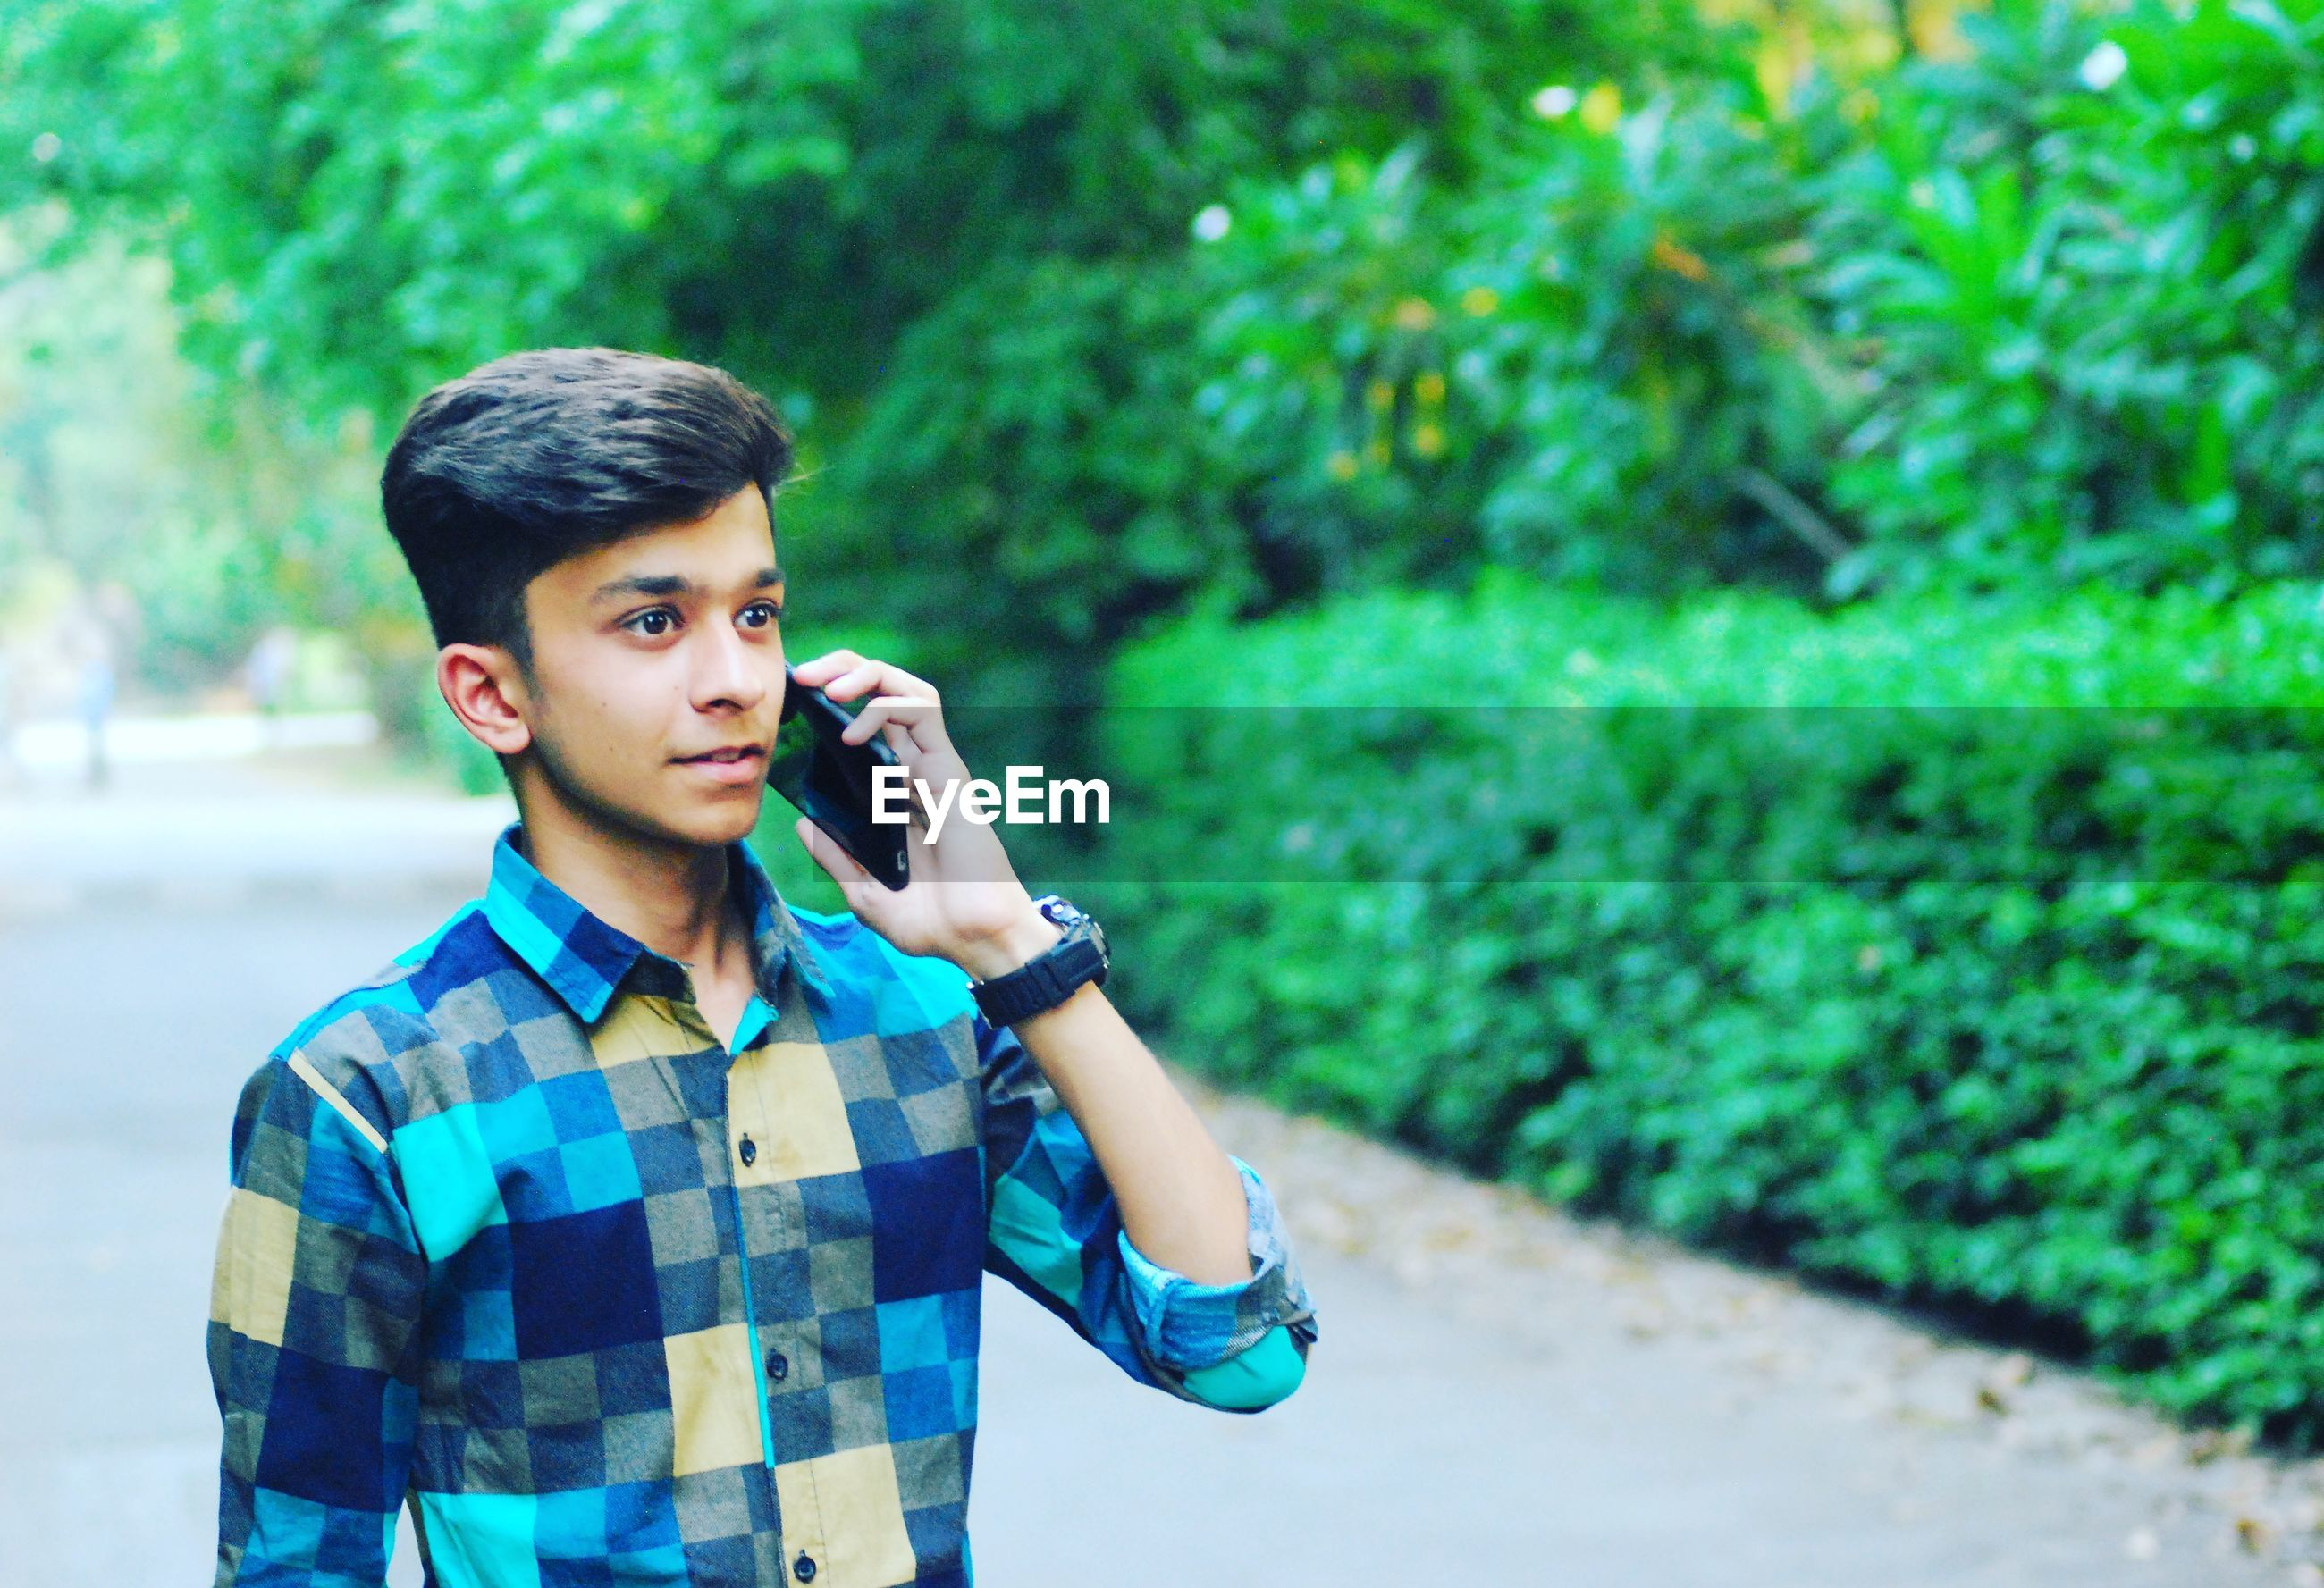 Teenage boy talking on mobile phone while standing outdoors